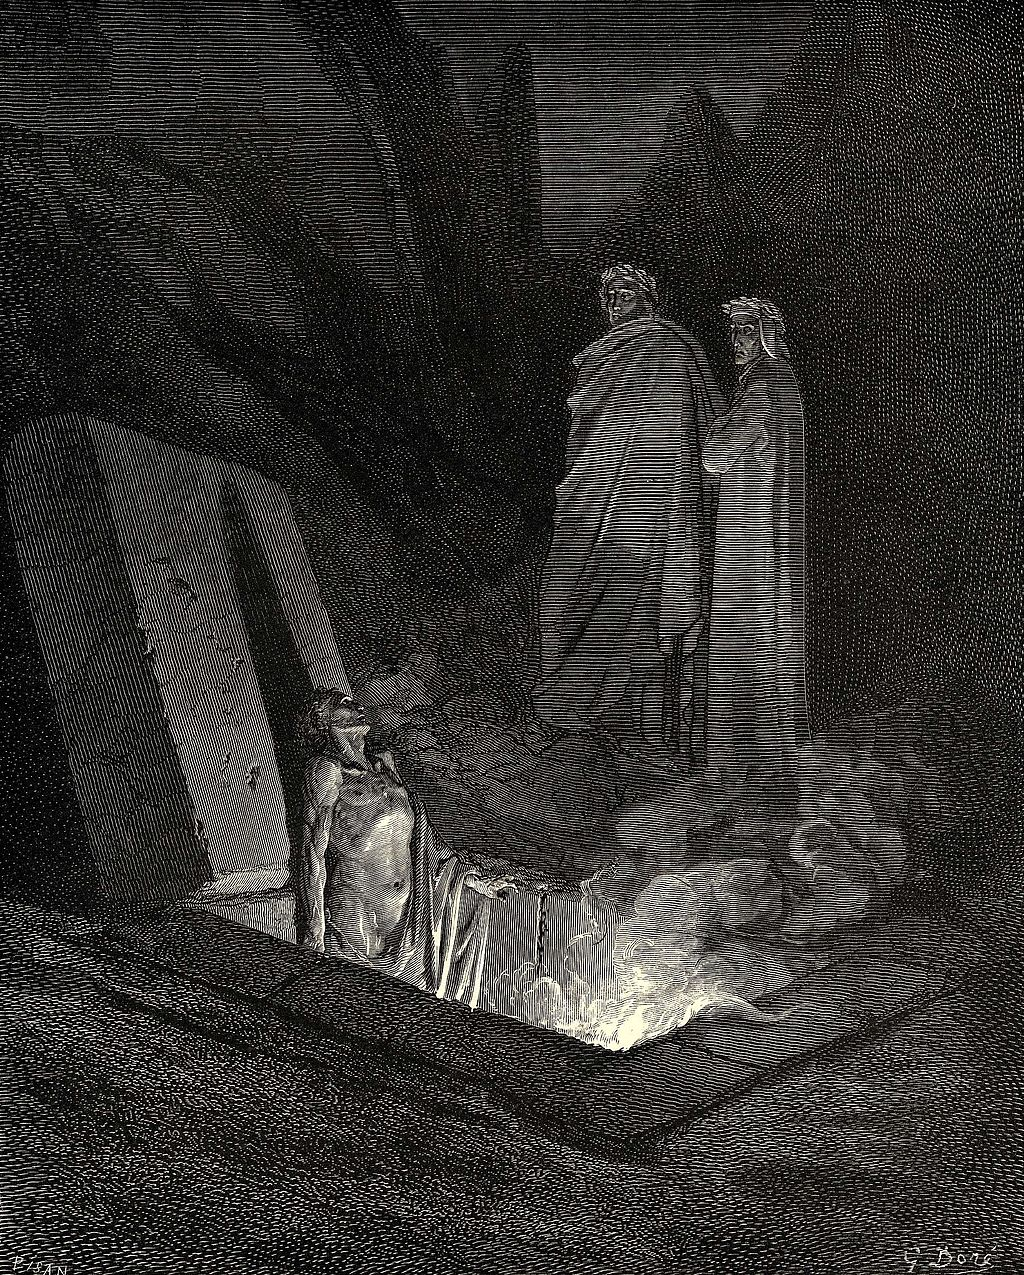 The Eagle, wood engraving by Gustave Doré